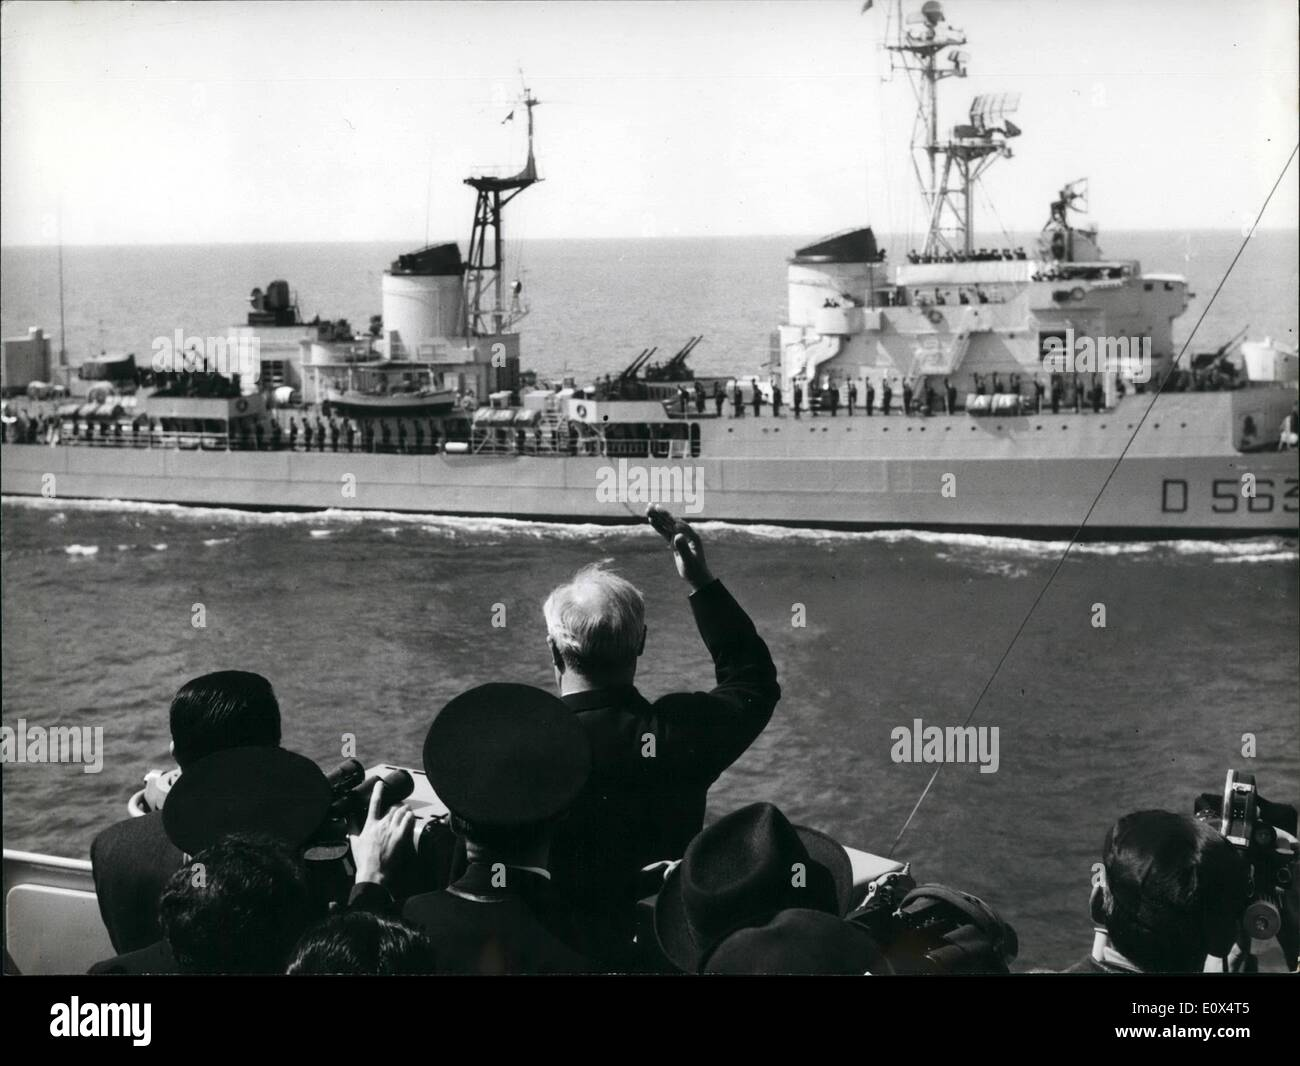 Apr. 04, 1965 - The Naval Manoeuvre At Gaeta The Italian President Giuseppe Saragat accompanied by Minister Anarsotti and by Members of General Staff was present at the Naval Manoeuvres of Italian Fleet in the Tirreno Sea near Gaeta, in the South of Italy. - Stock Image